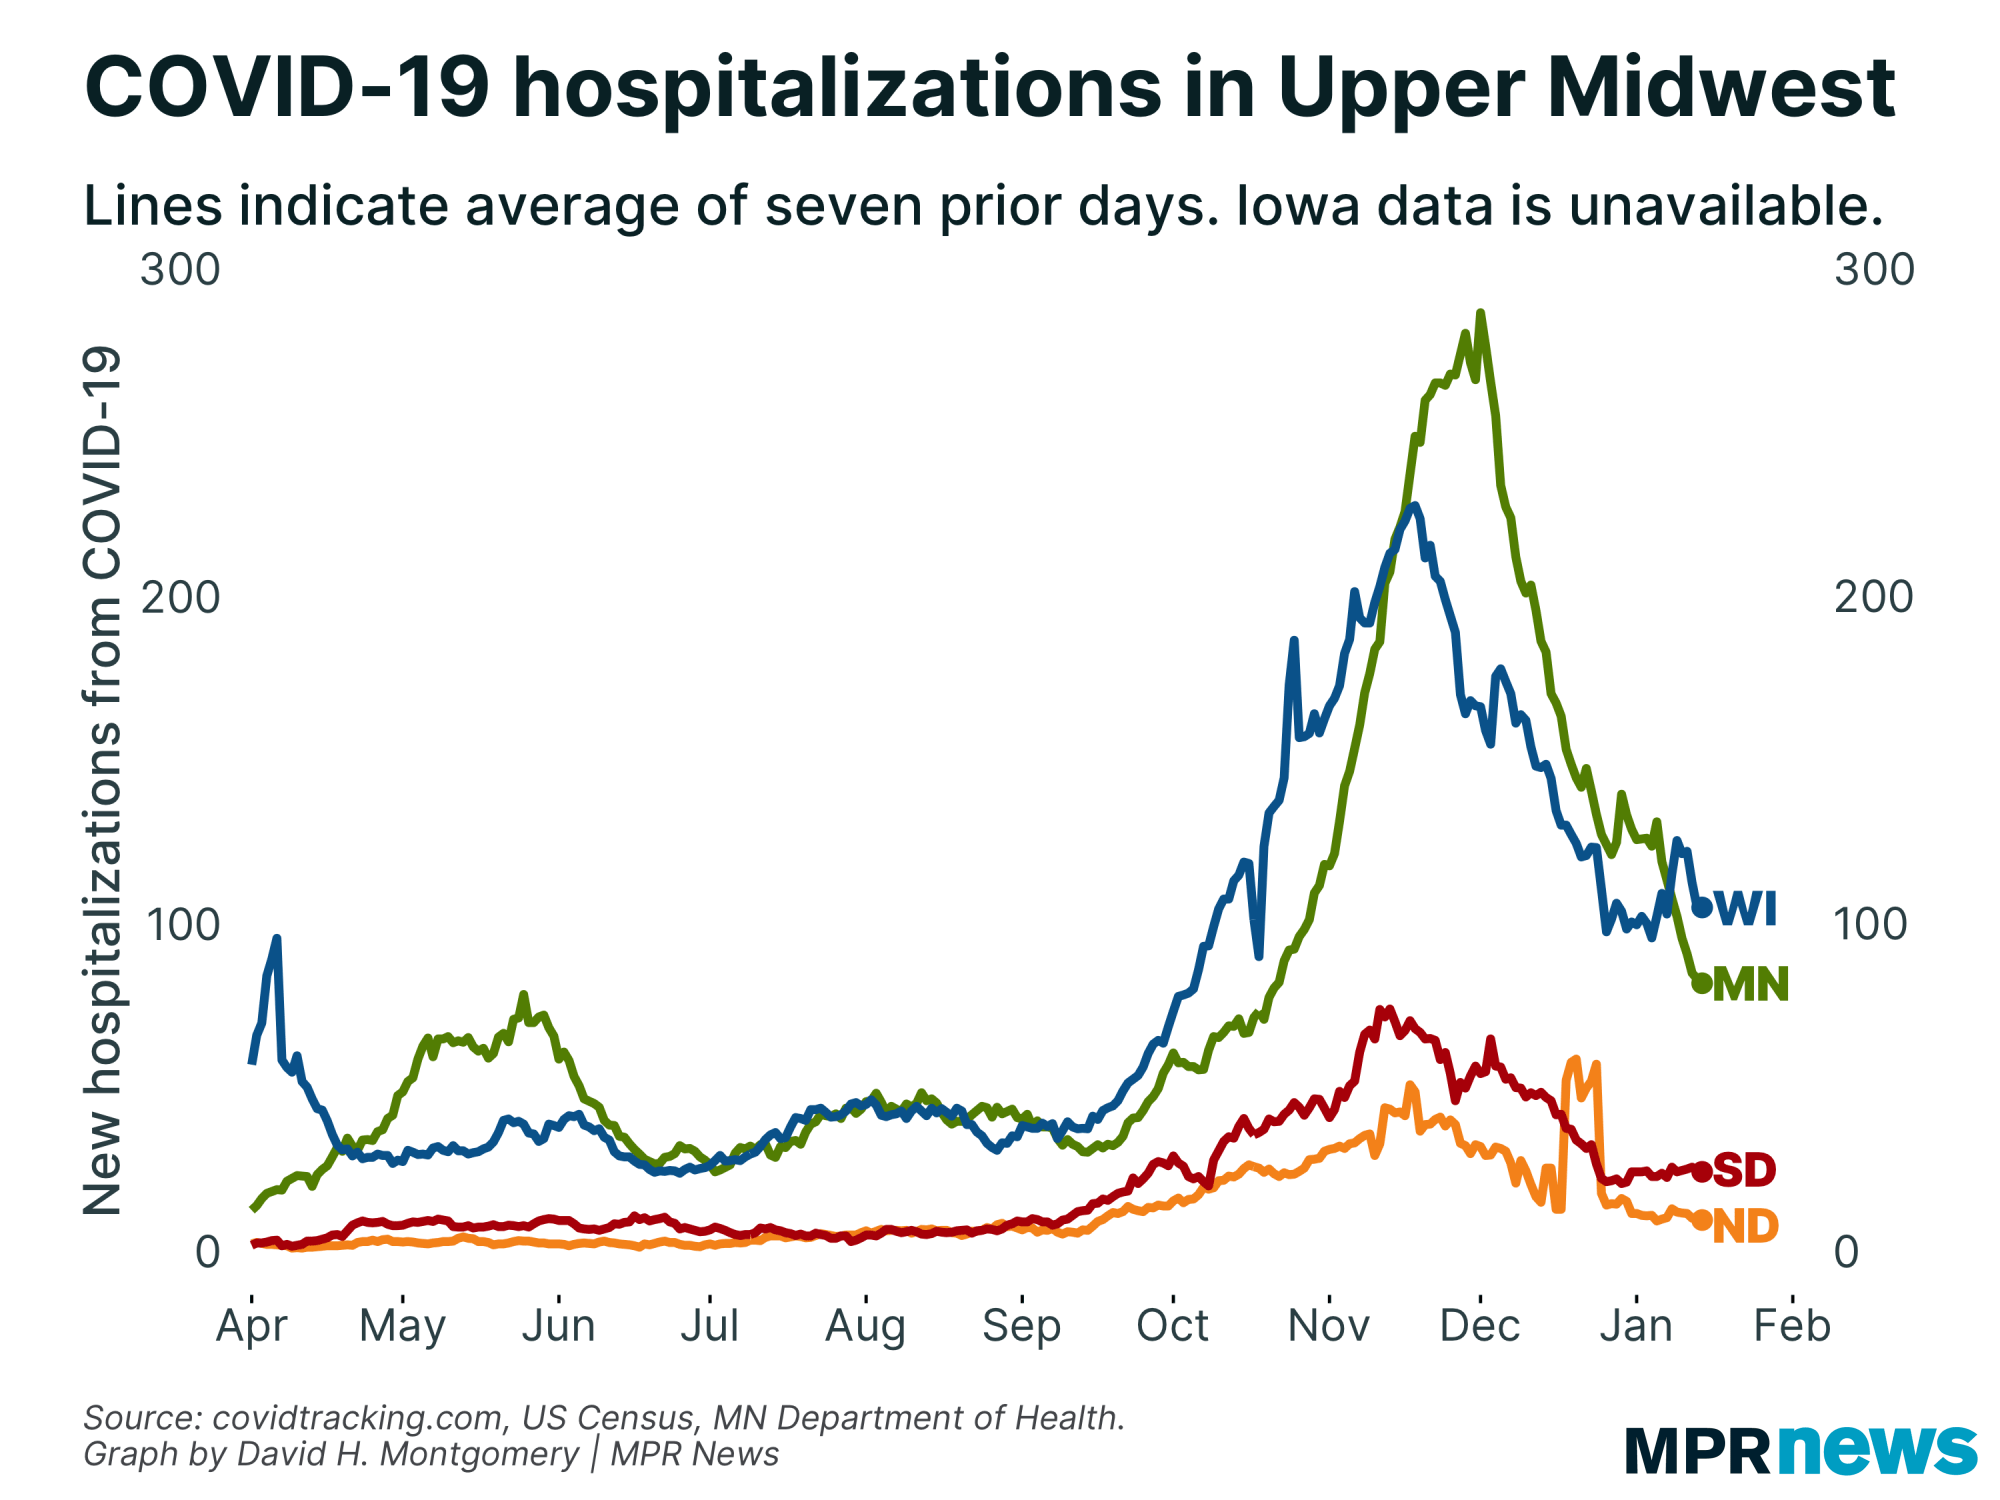 New COVID-19 hospitalizations in the Upper Midwest